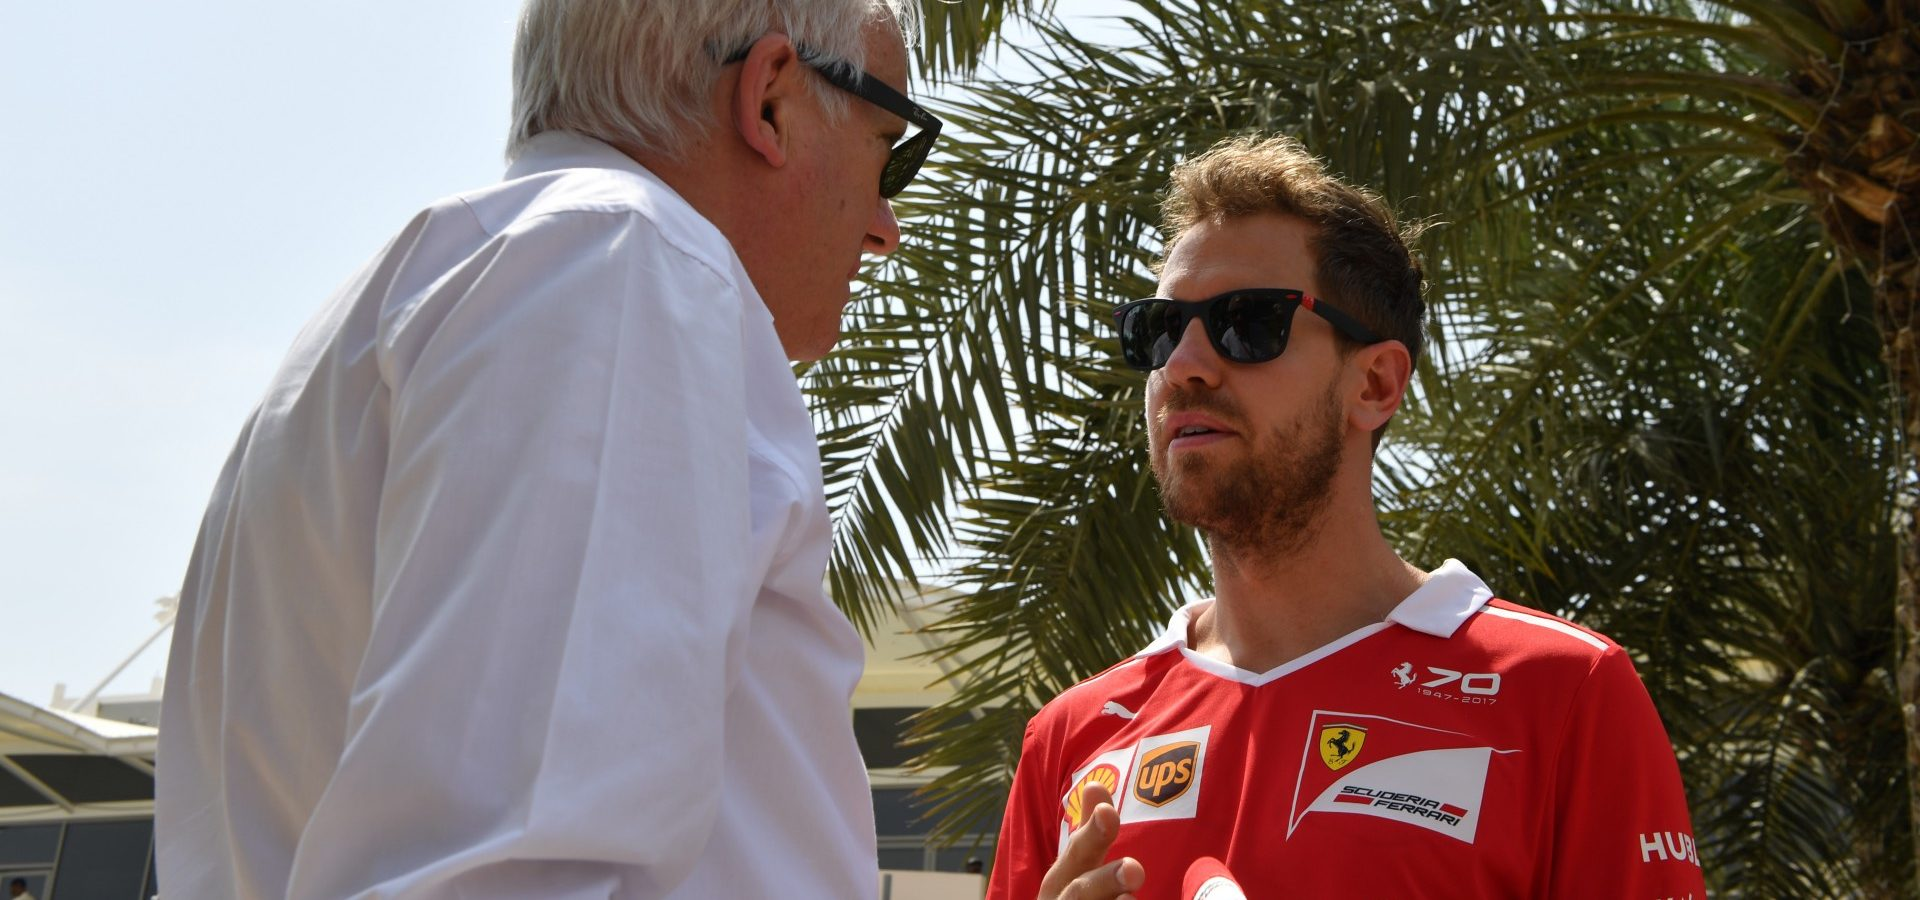 Sebastian Vettel (GER) Ferrari with Charlie Whiting (GBR) FIA Delegate at Formula One World Championship, Rd3, Bahrain Grand Prix Preparations, Bahrain International Circuit, Sakhir, Bahrain, Thursday 13 April 2017.